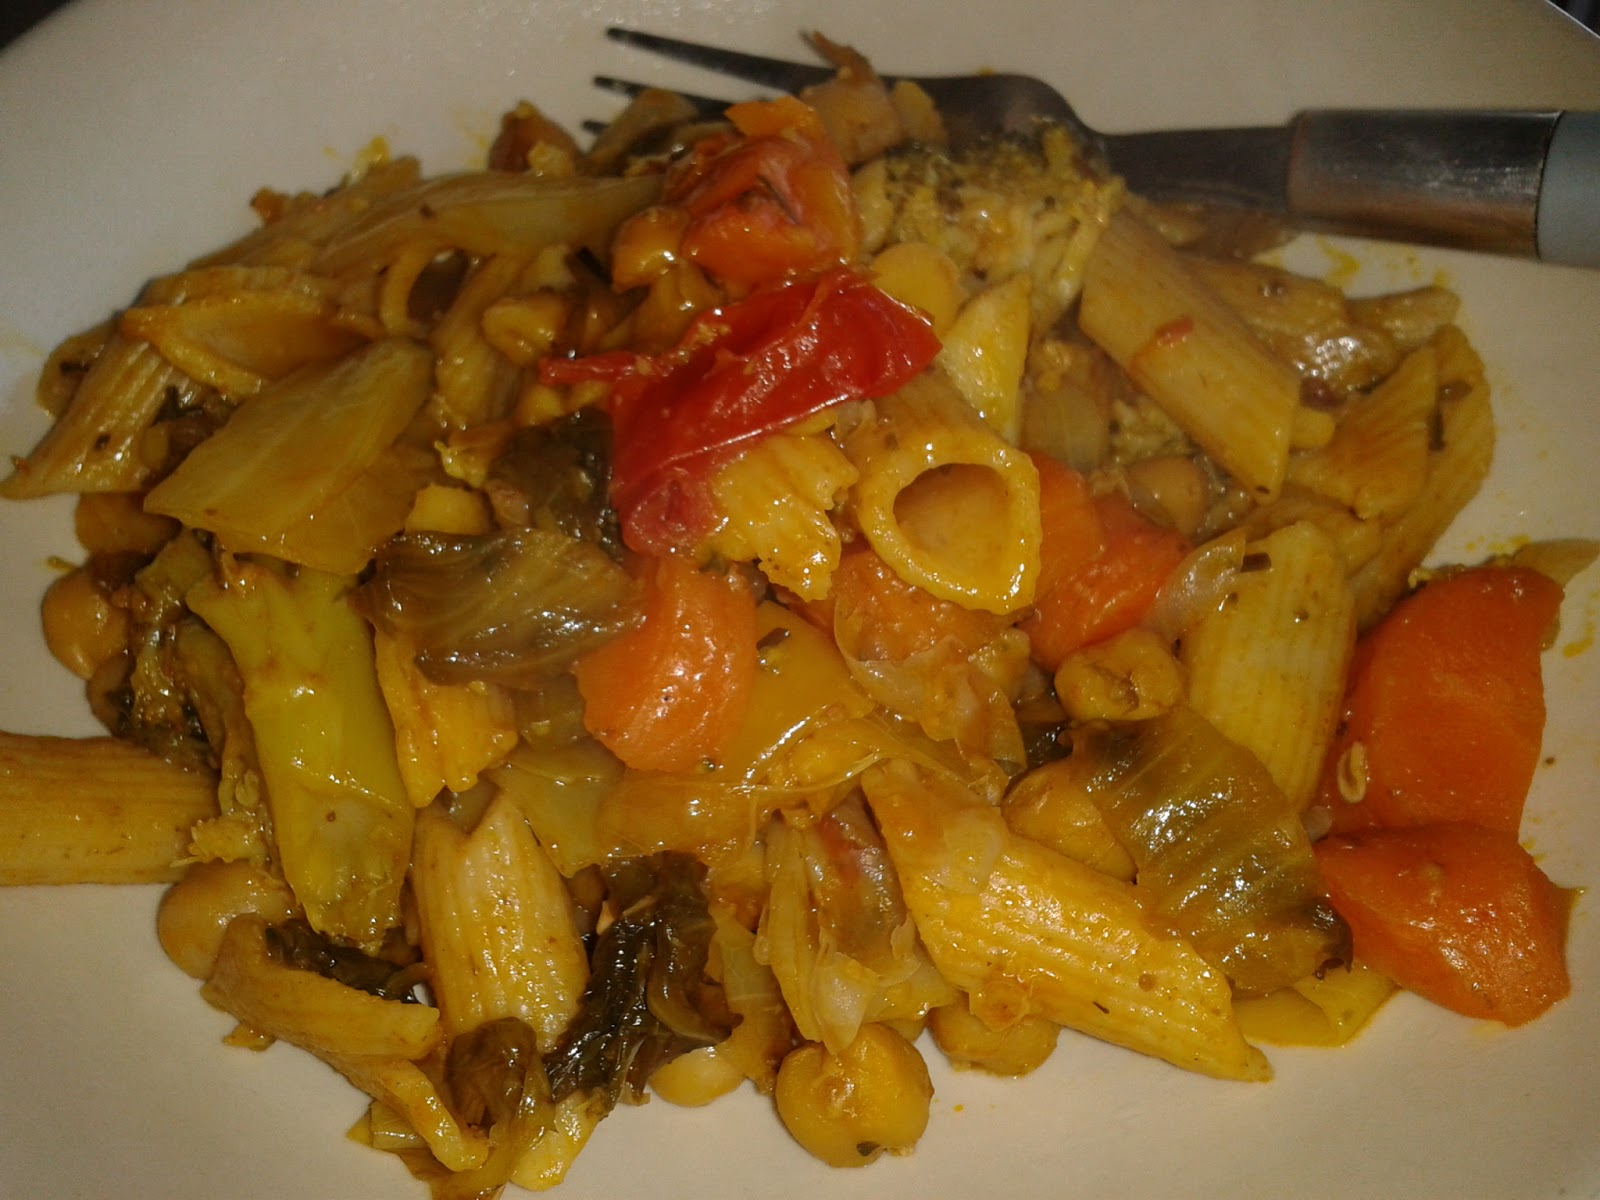 The Vegan Nigerian: SLOW-COOKED SPICY PASTA WITH CABBAGE AND CHICKPEAS